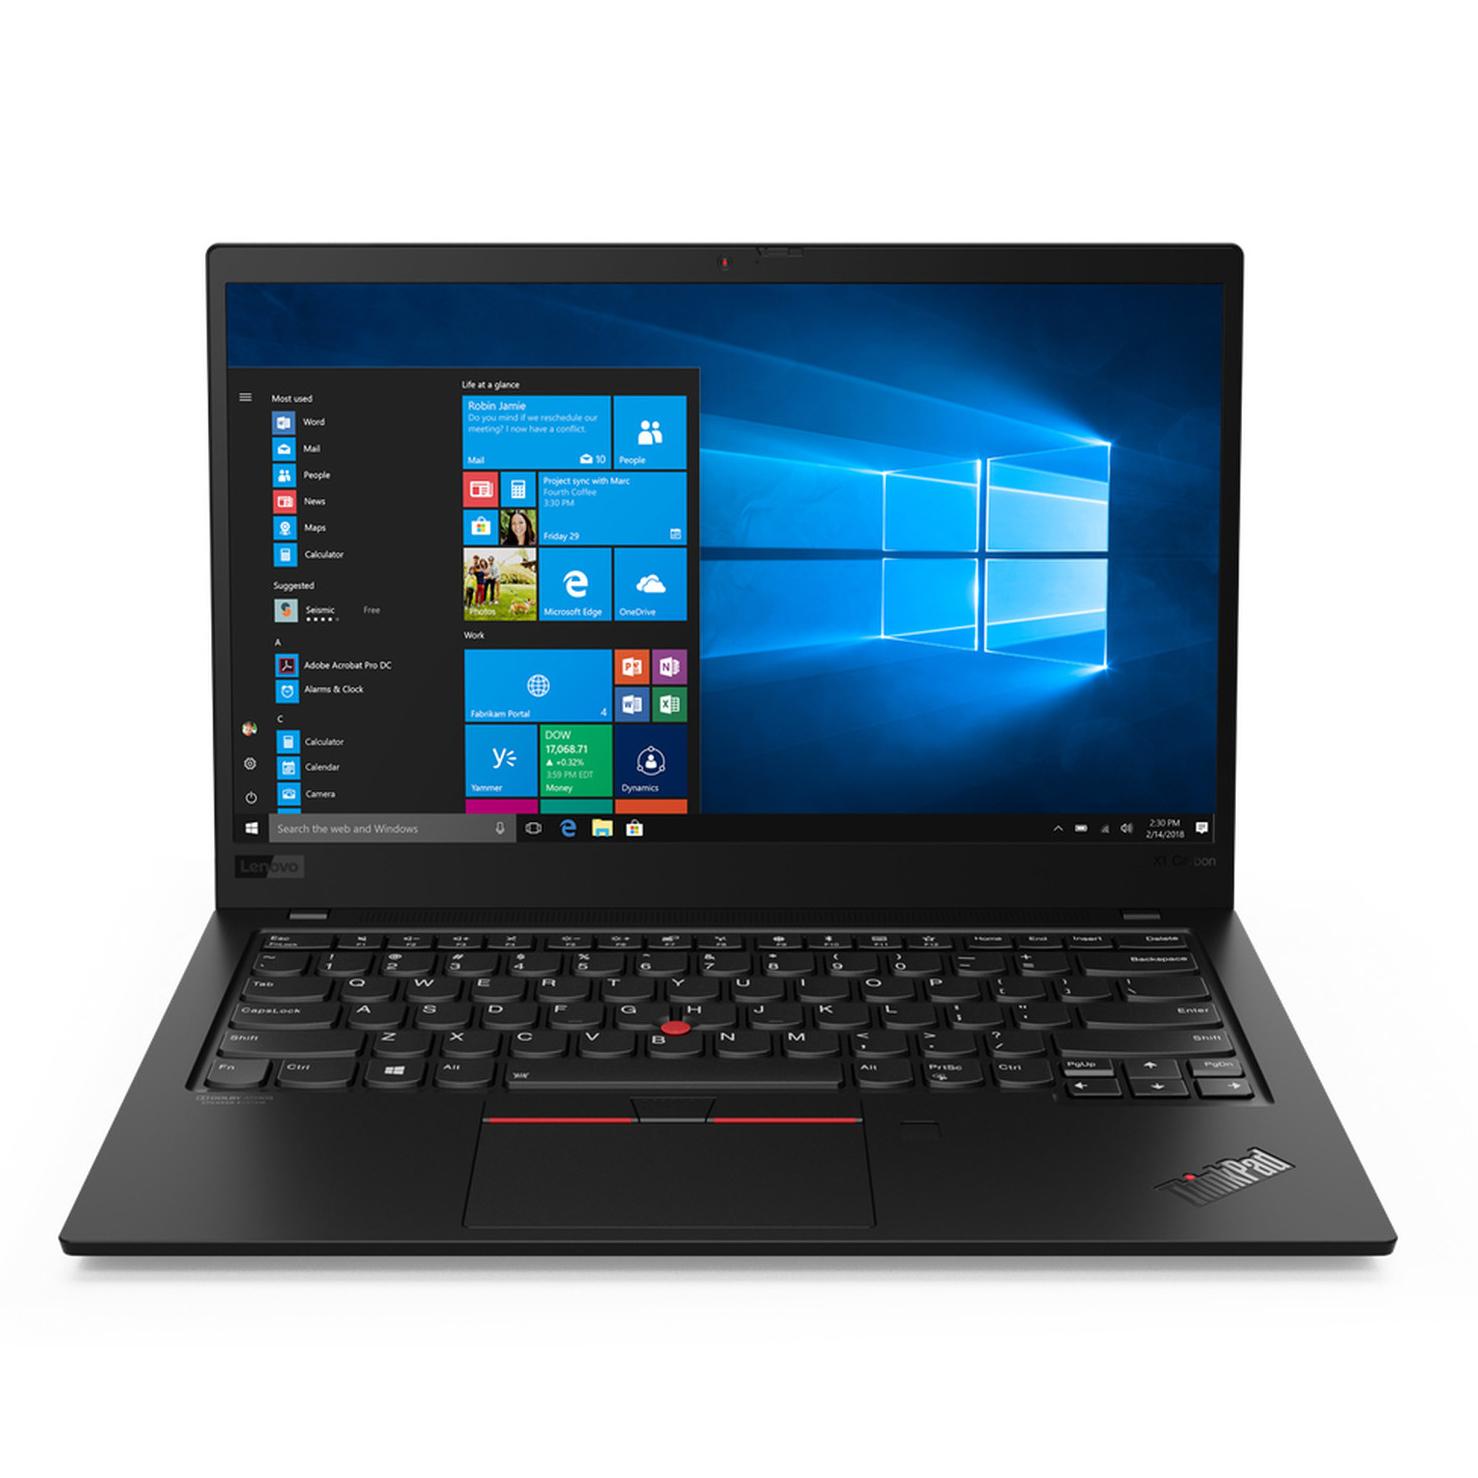 LENOVO THINKPAD X1 CARBON GEN 5 Core i7-7600U/ RAM 16GB/ SSD 256GB / Intel HD Graphics 620/  14 inch